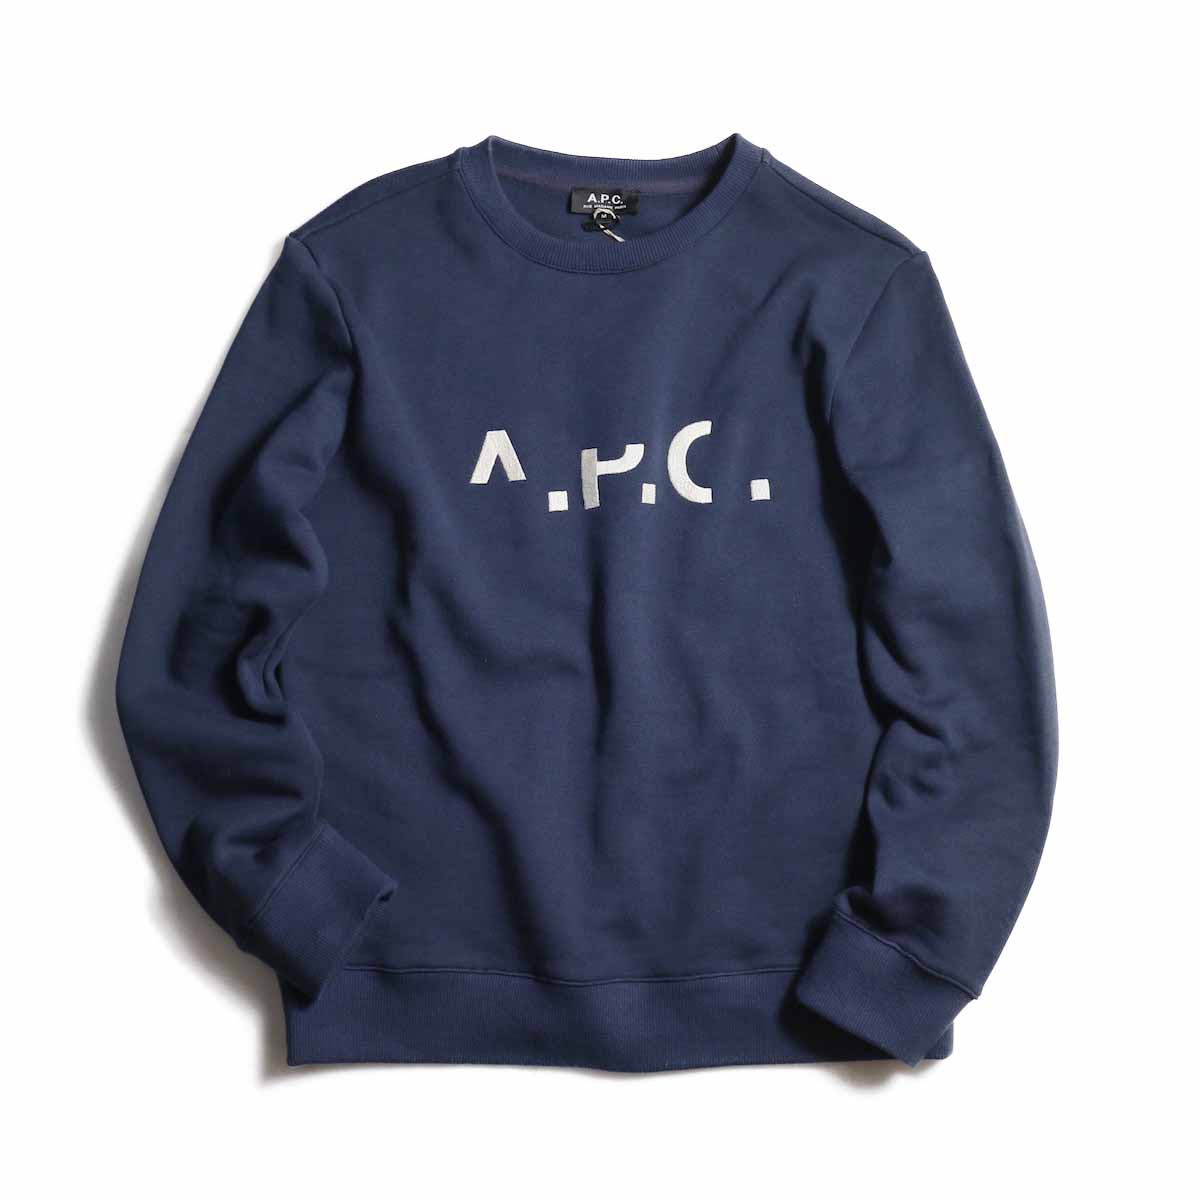 A.P.C. / Sweat Theo JPS -Navy